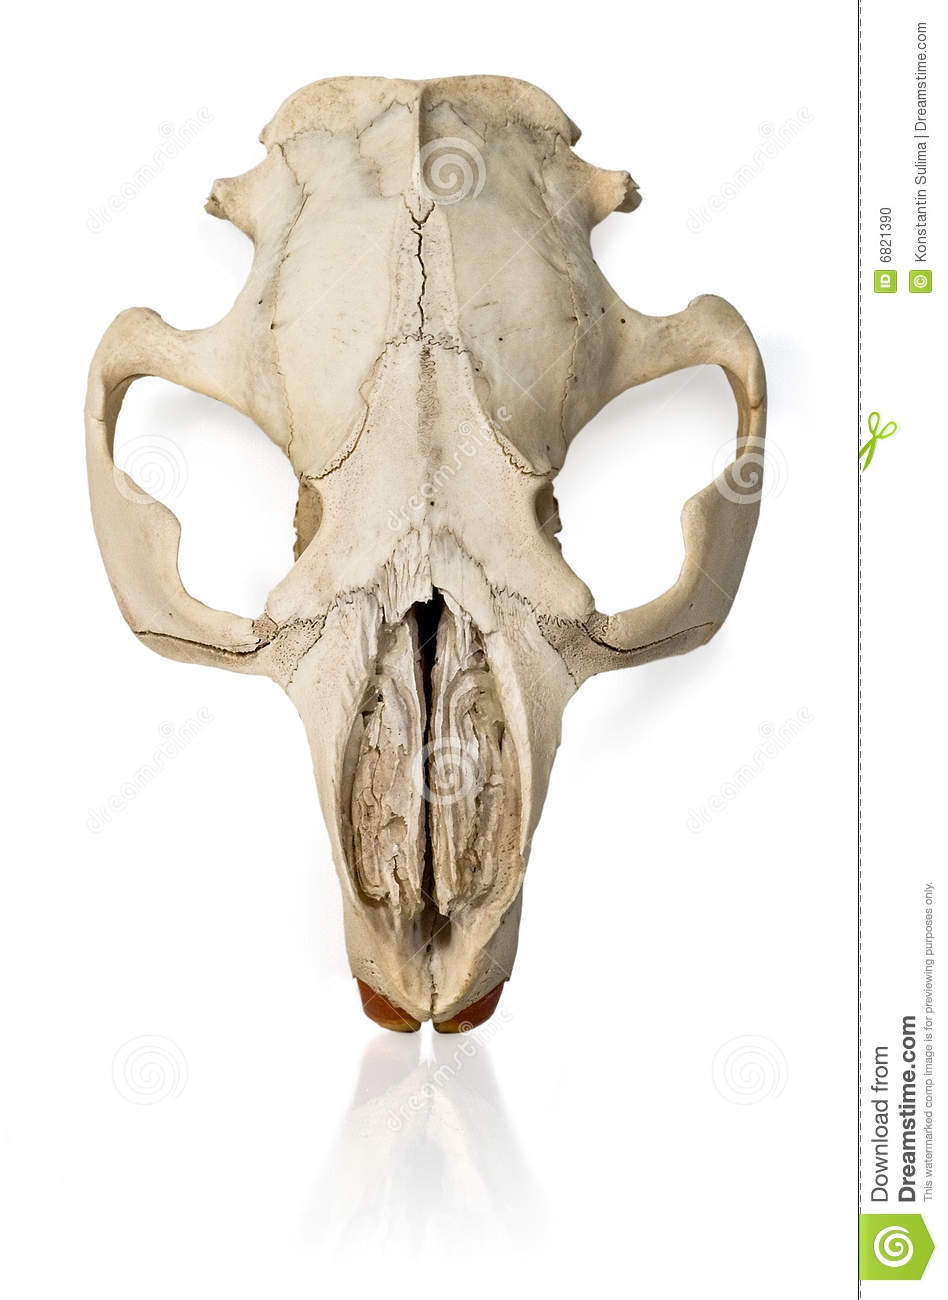 Beaver skull stock photo. Image of nature, skulls, dying - 6821390